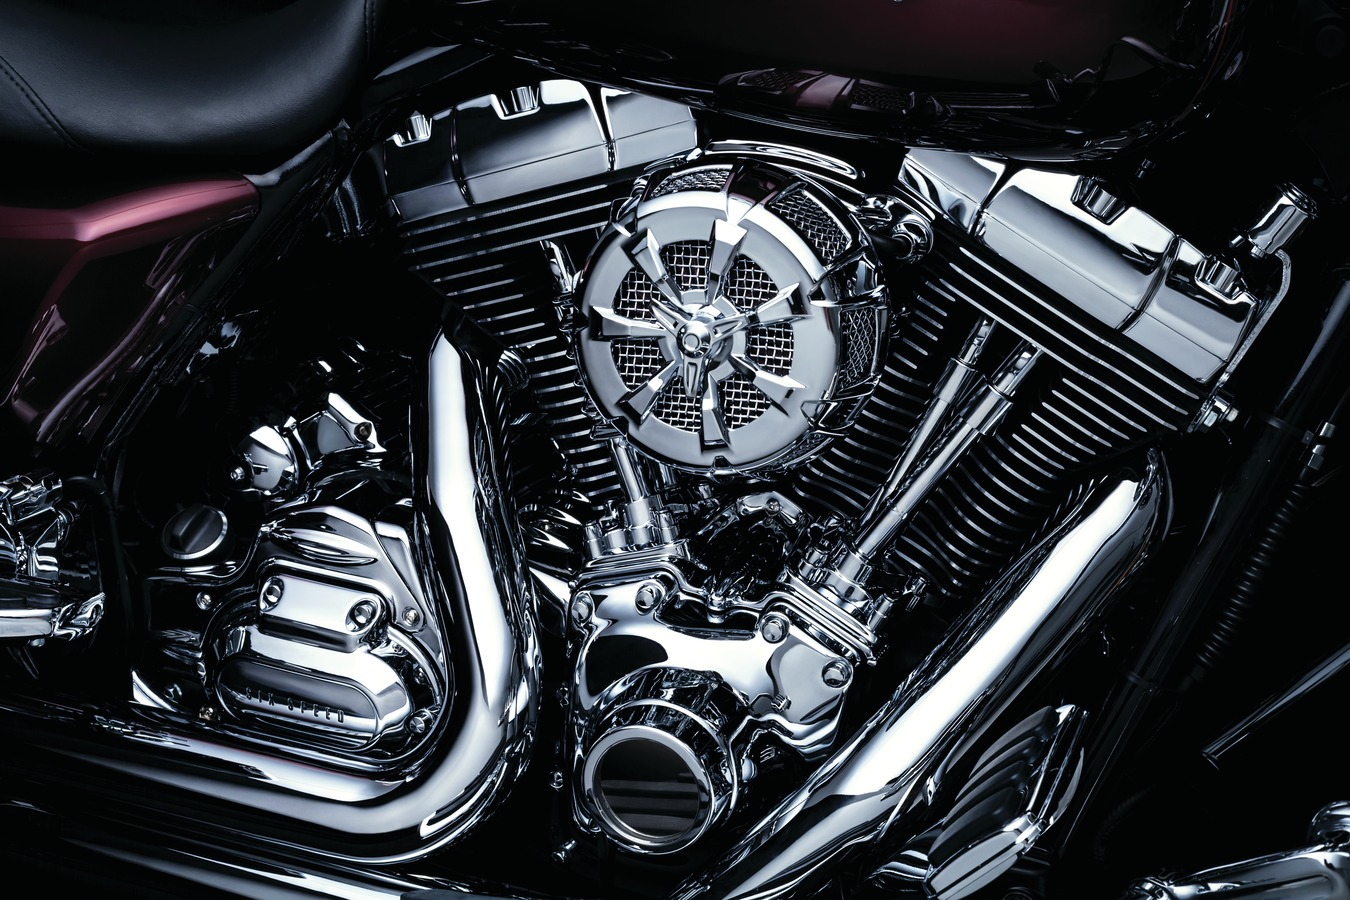 20374_kur_roadking,engine,right_ob_h_20_1350x900_RGB_72DPI